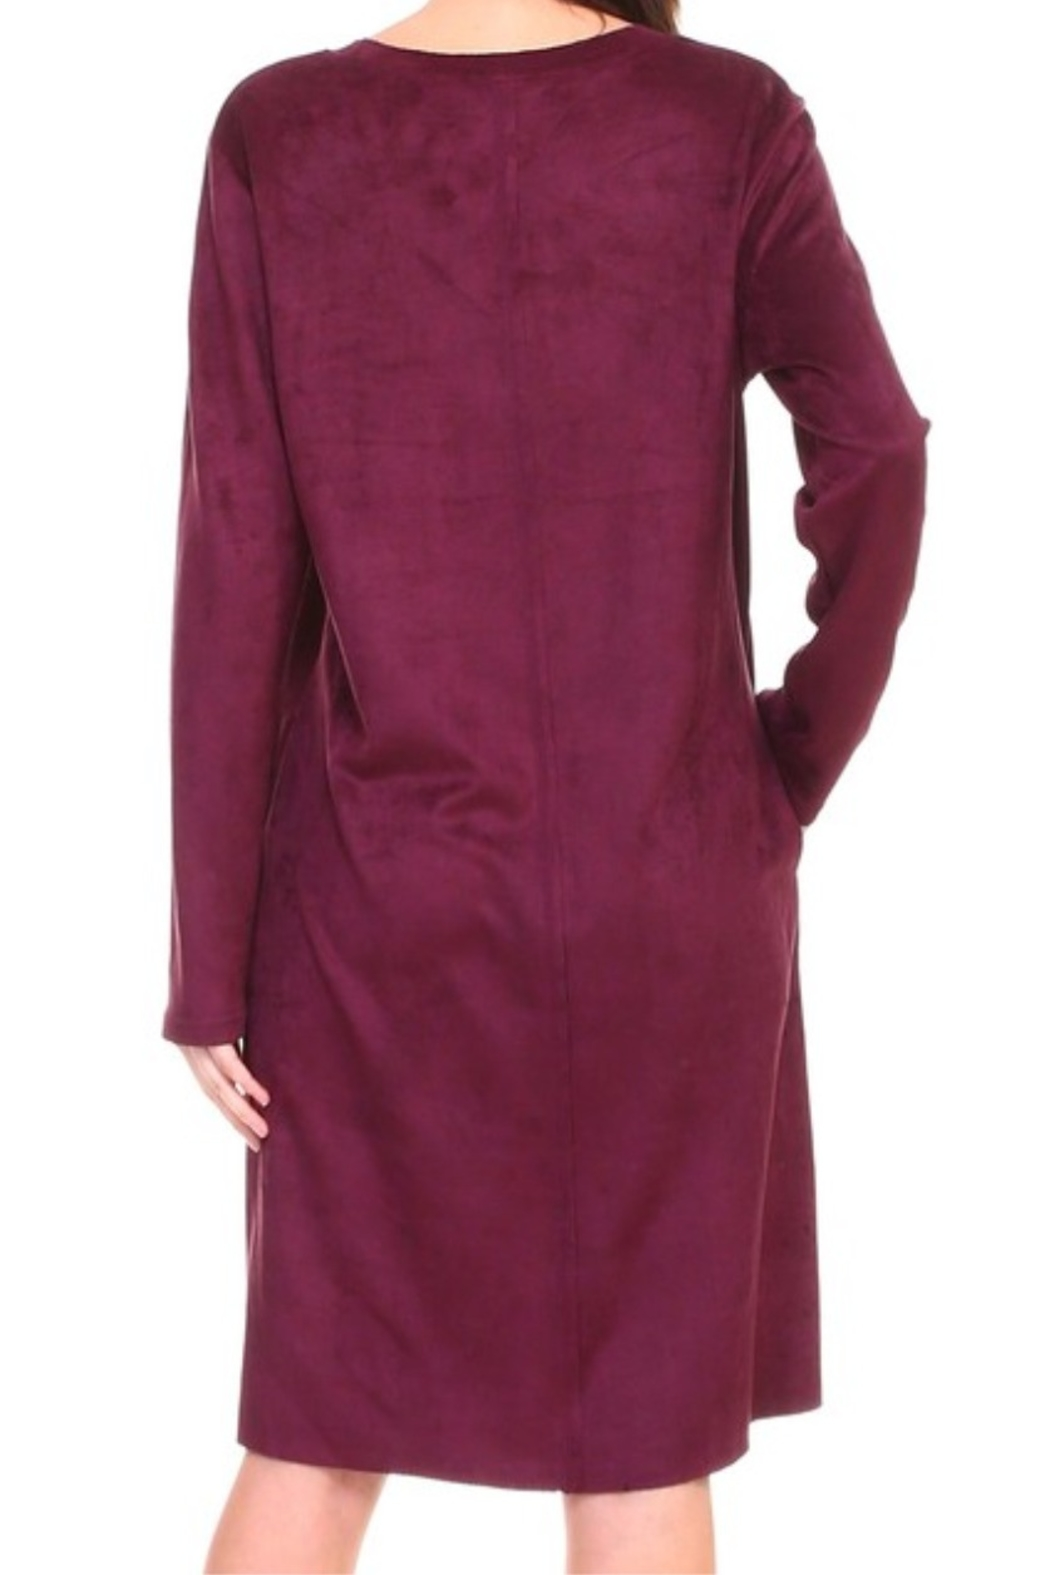 Joh Apparel Aurora Faux Suede Dress - Front Full Image